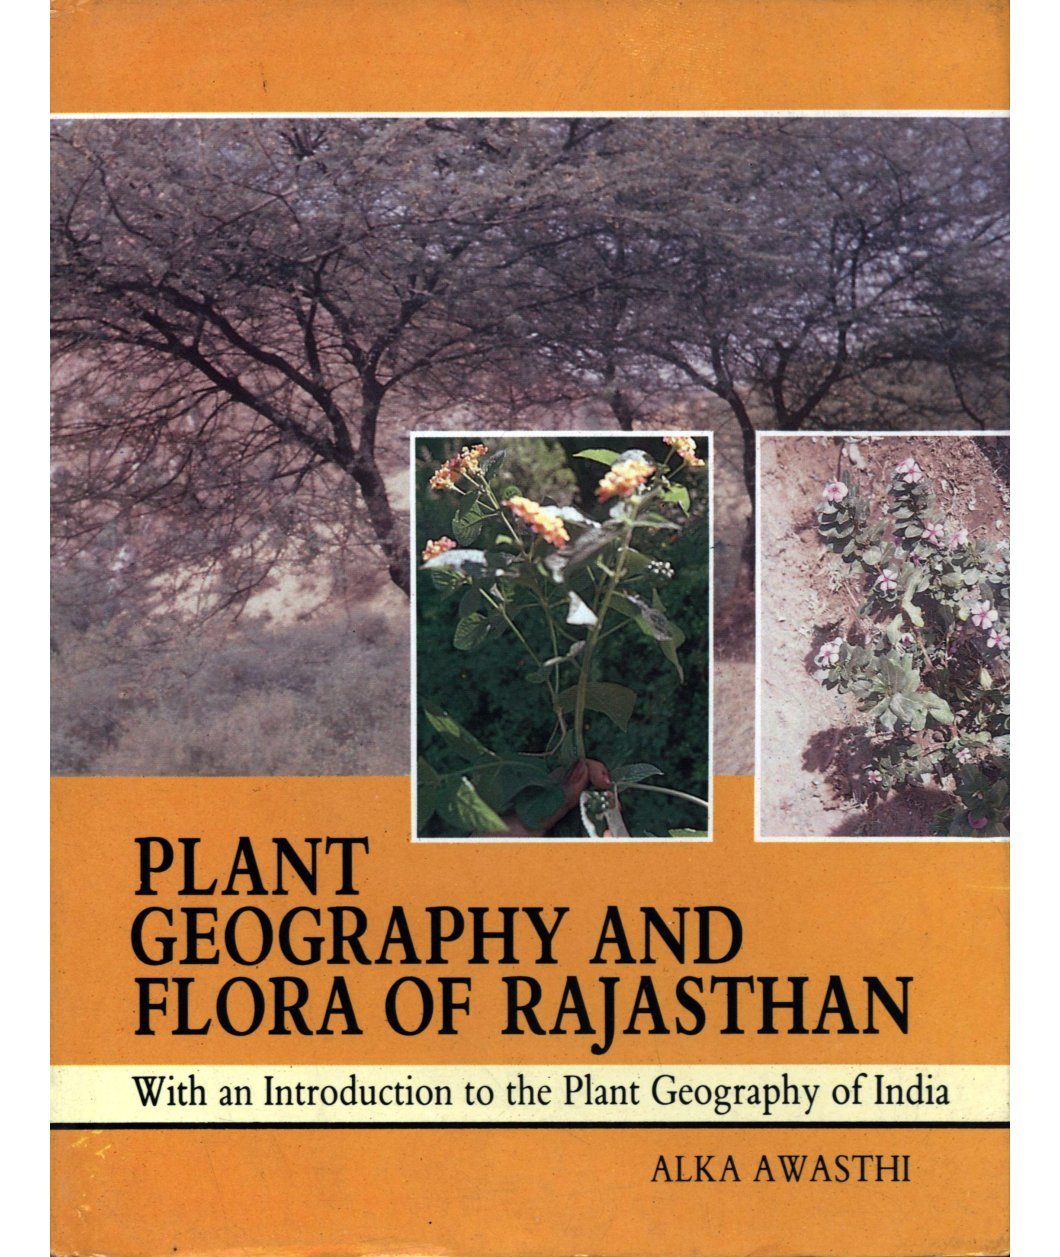 Plant Geography and Flora of Rajasthan